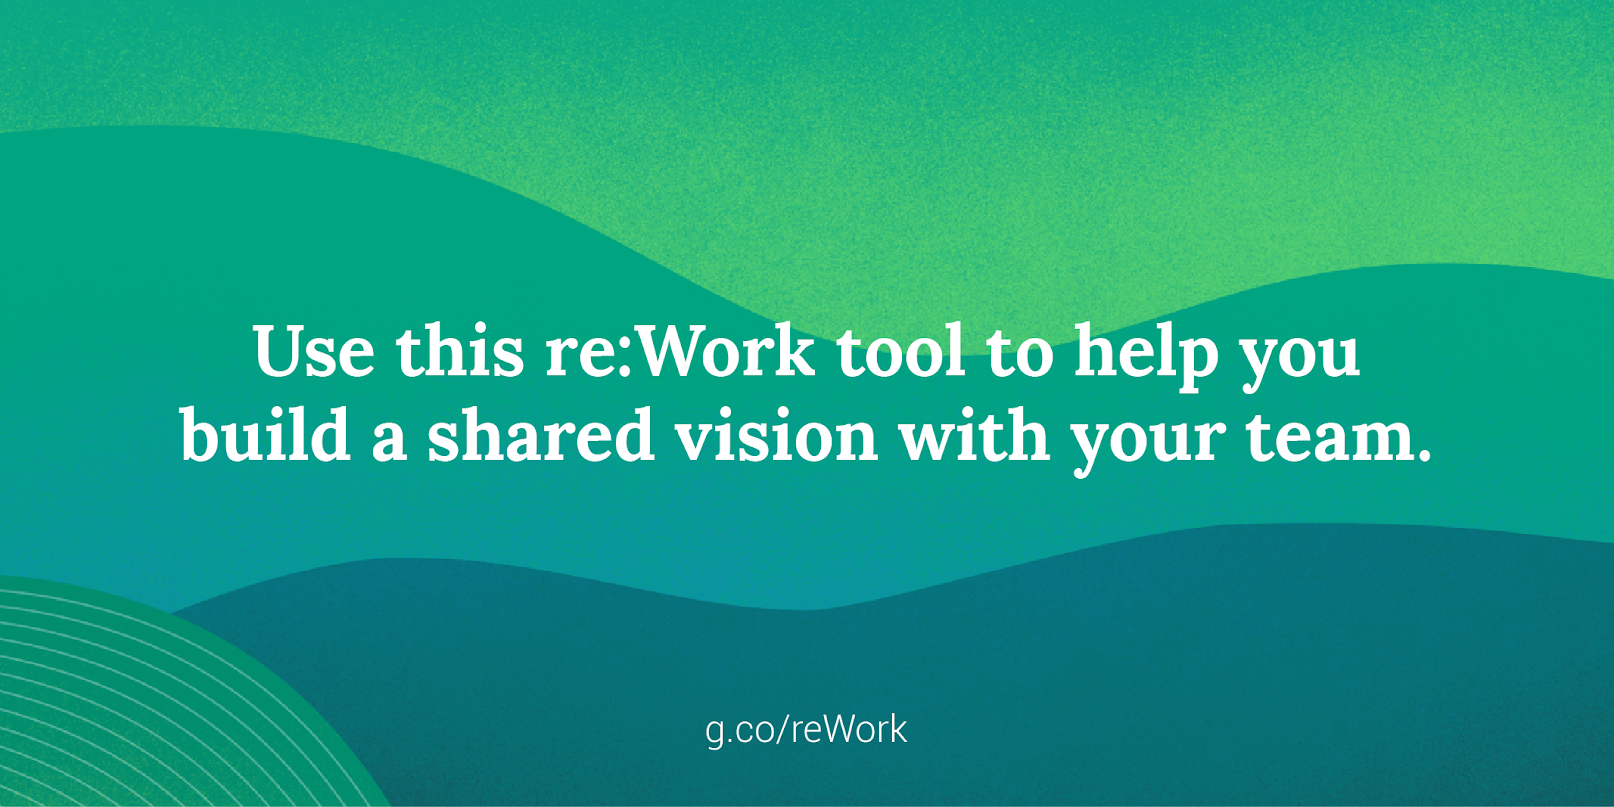 New tool: Build a shared vision with your team